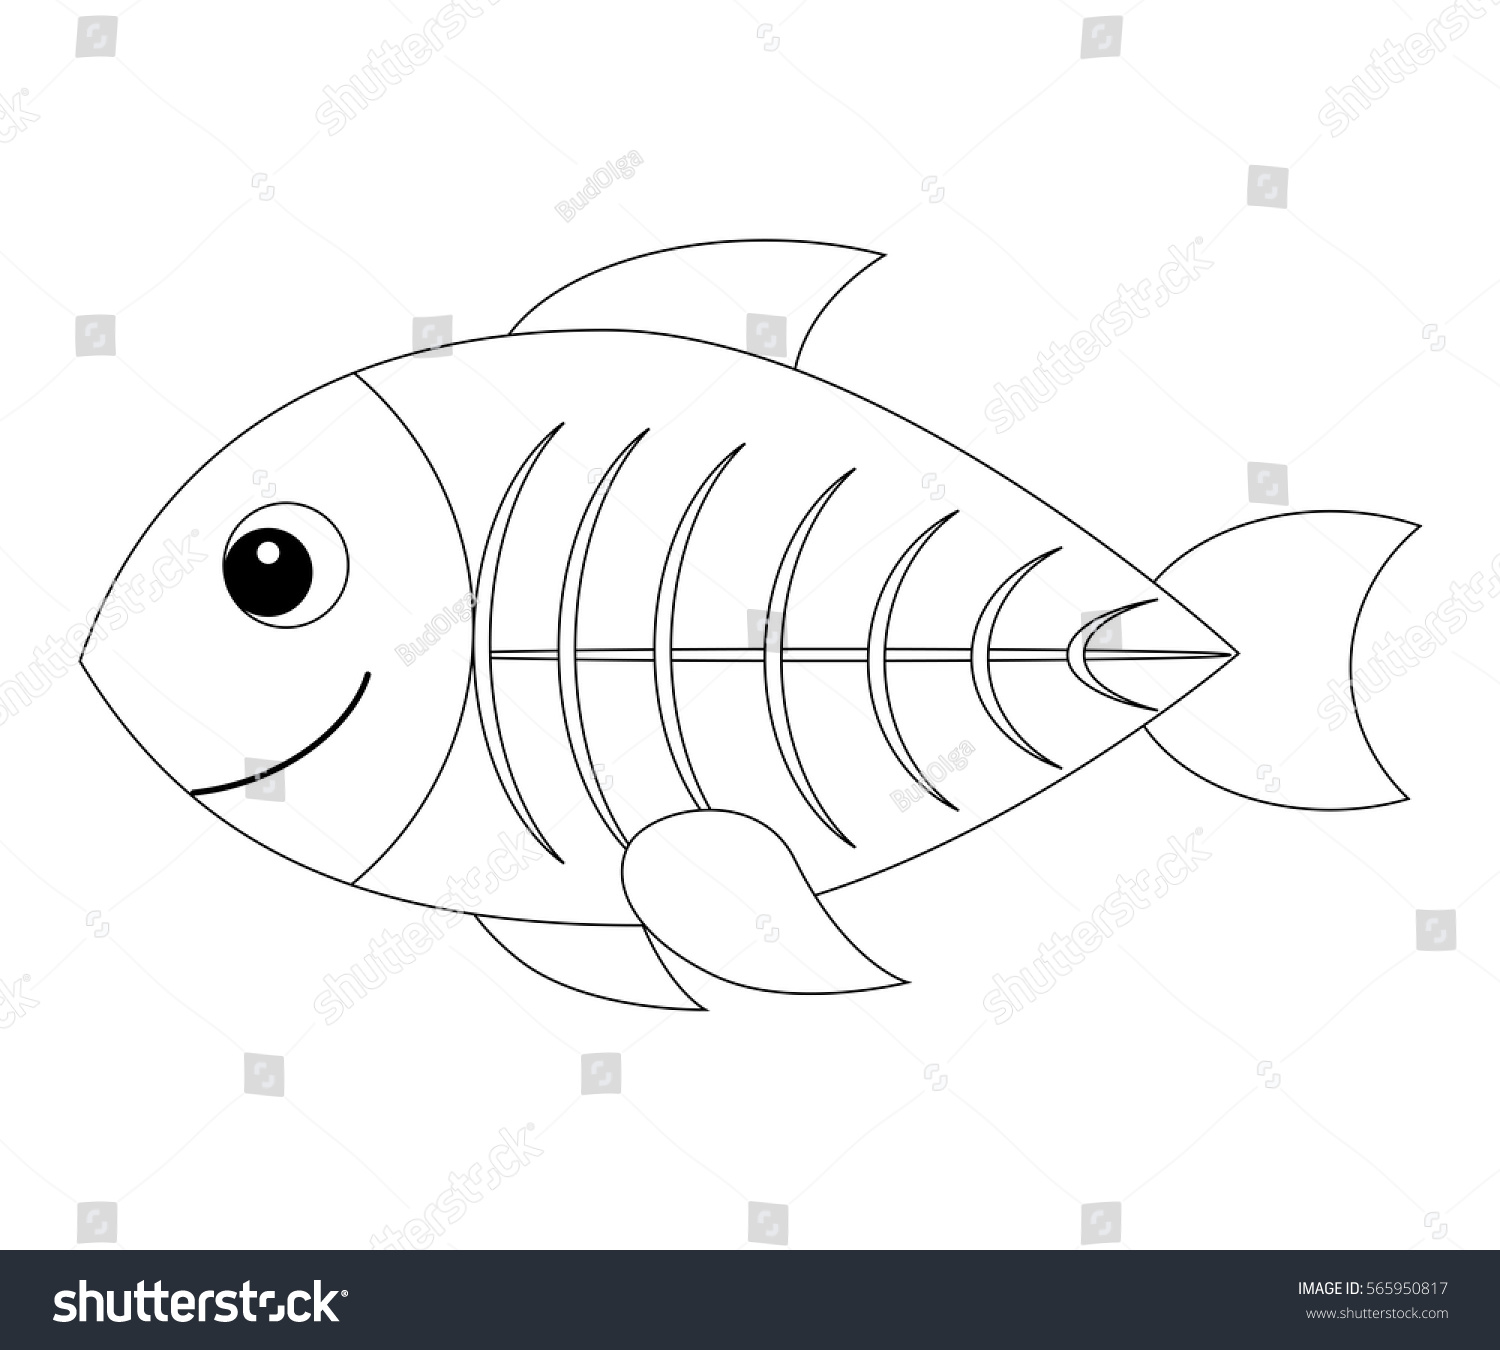 X ray coloring page - Colorless Cartoon X Ray Fish Coloring Page For Preschool Children